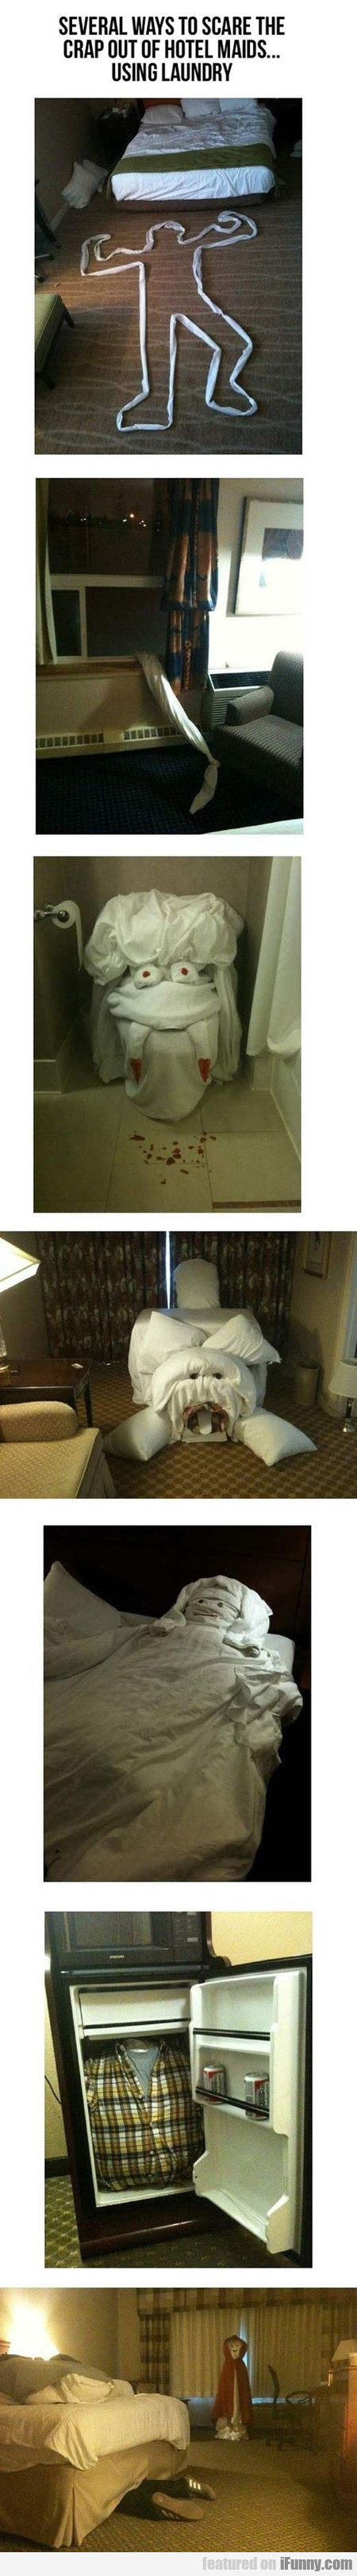 Before You Leave Your Hotel Room